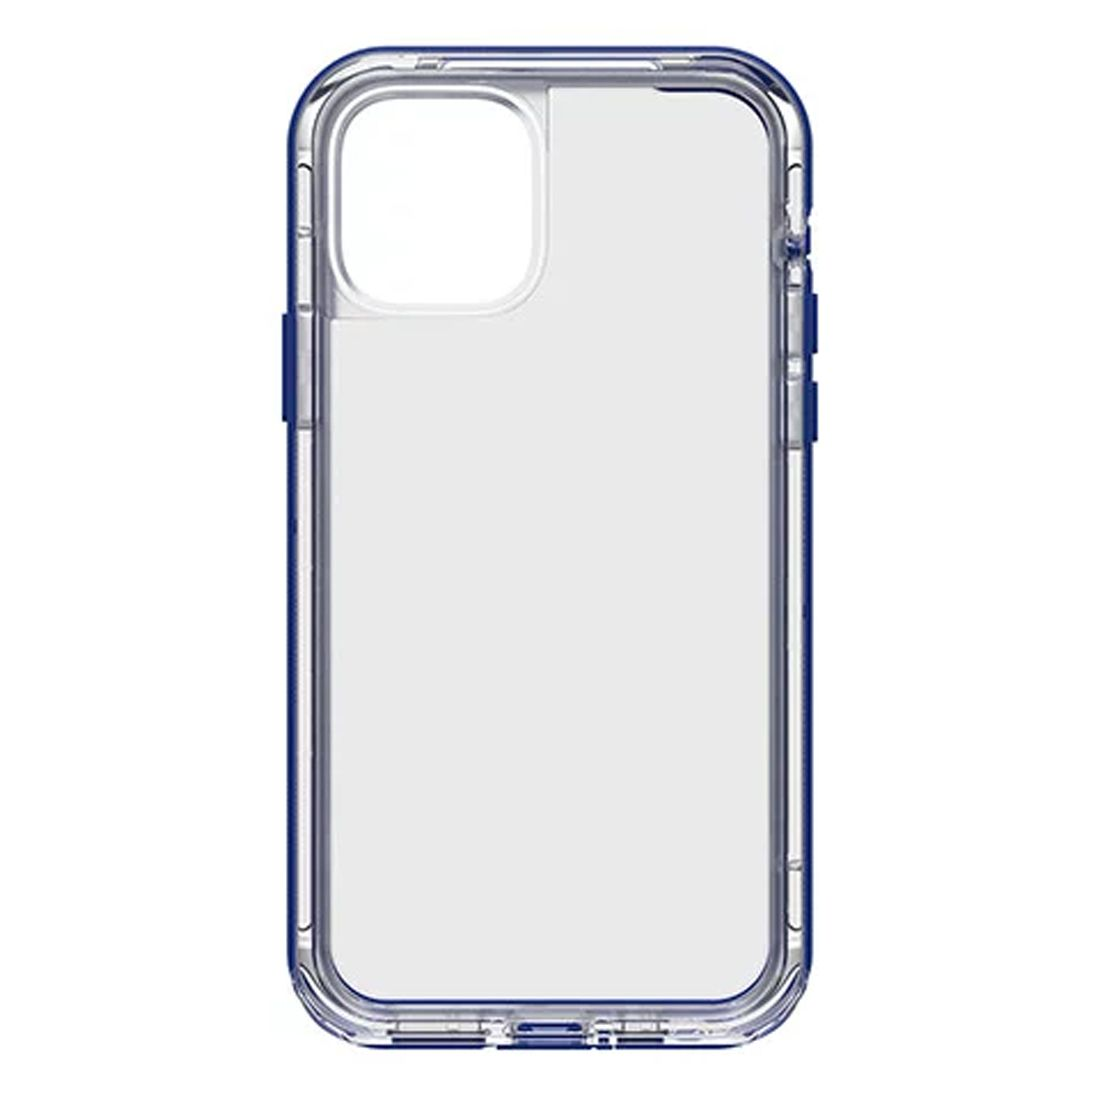 LifeProof Next Case For Apple iPhone 11 Pro - Blueberry Frost